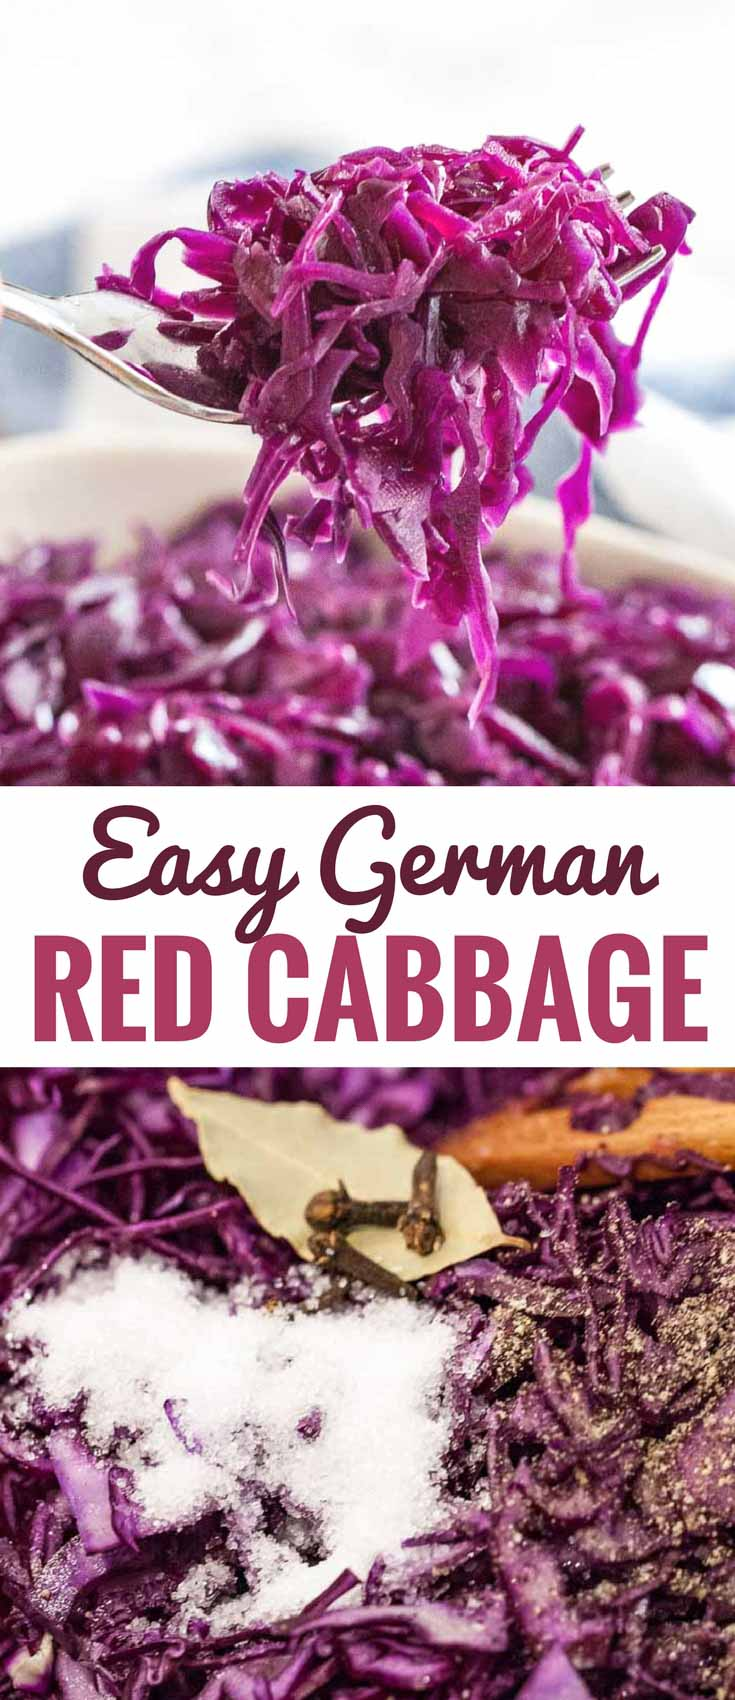 German Red Cabbage (Rotkohl) is a popular German side dish that is very easy to make from scratch! It tastes so aromatic with a distinctive sweet and sour flavor and makes a perfect side for a roast dinner together with spaetzle or potato dumplings. This recipe for braised red cabbage with apples is a family favorite! #rotkohl #blaukraut #Oktoberfest #RedCabbage #GermanSideDishes #EasySideDishes #GermanRecipes